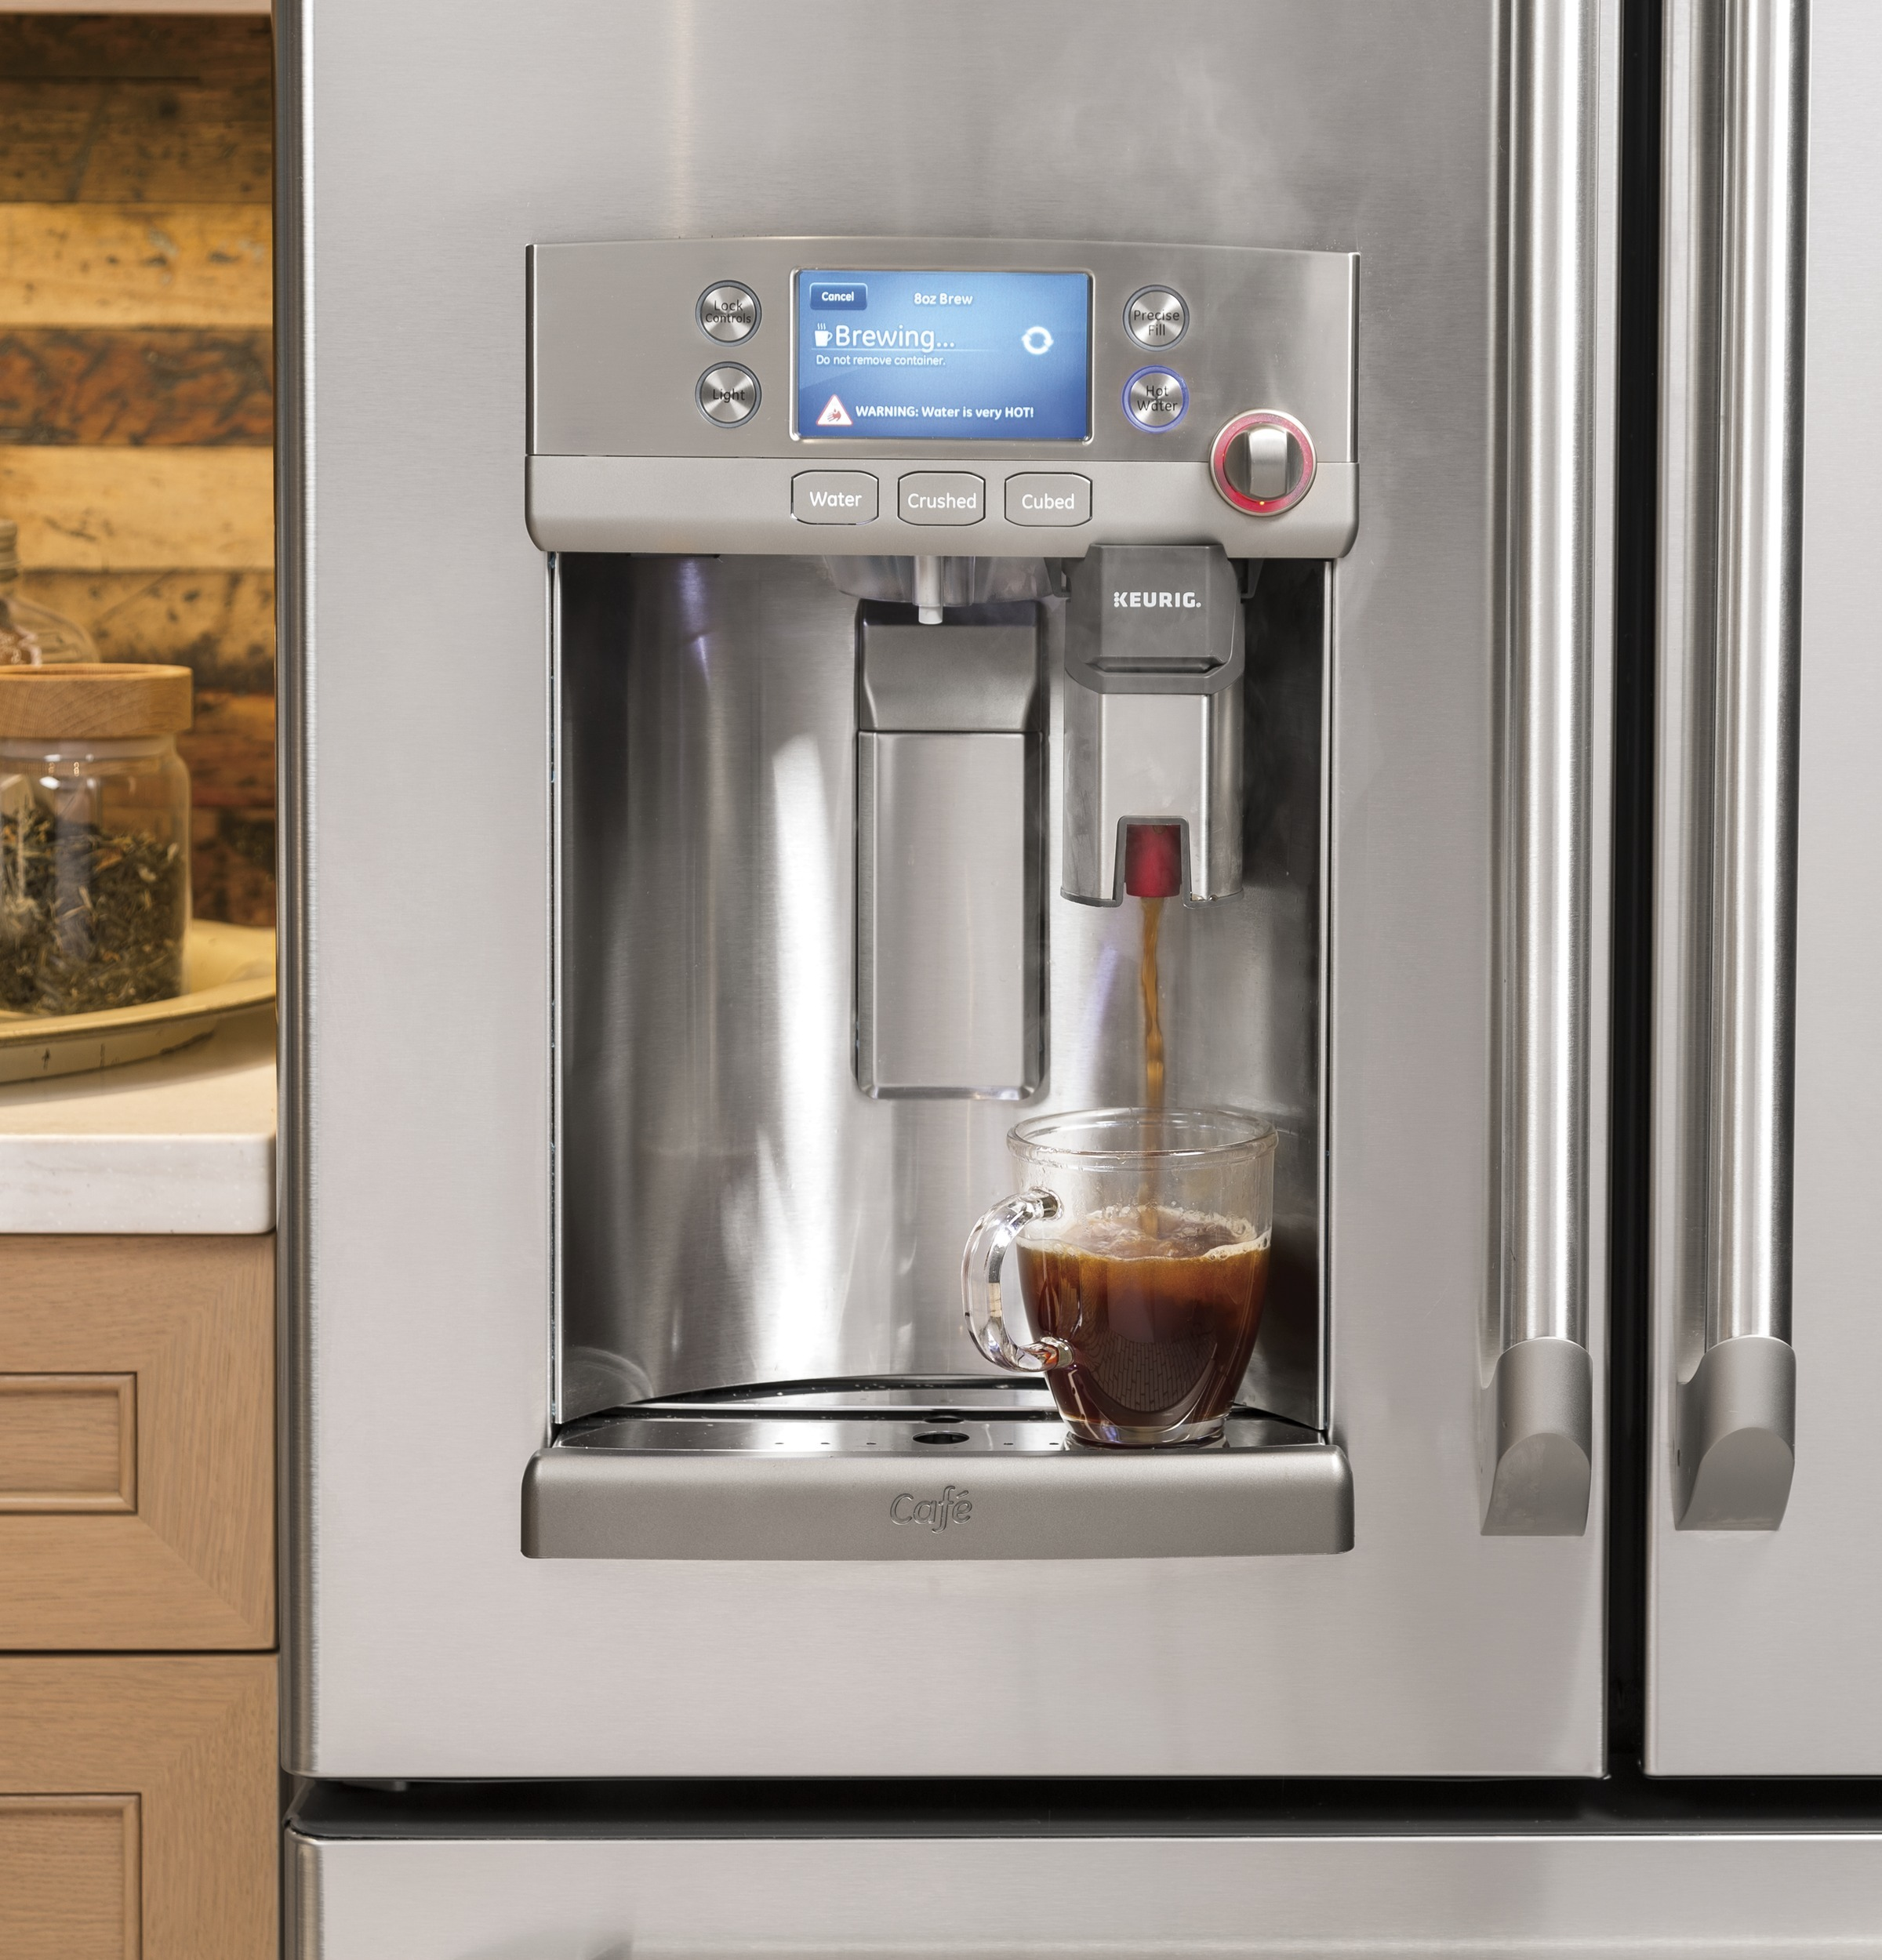 Whirlpool Black Ice Ge Caf 233 Is A Refrigerator With A Keurig System Built In